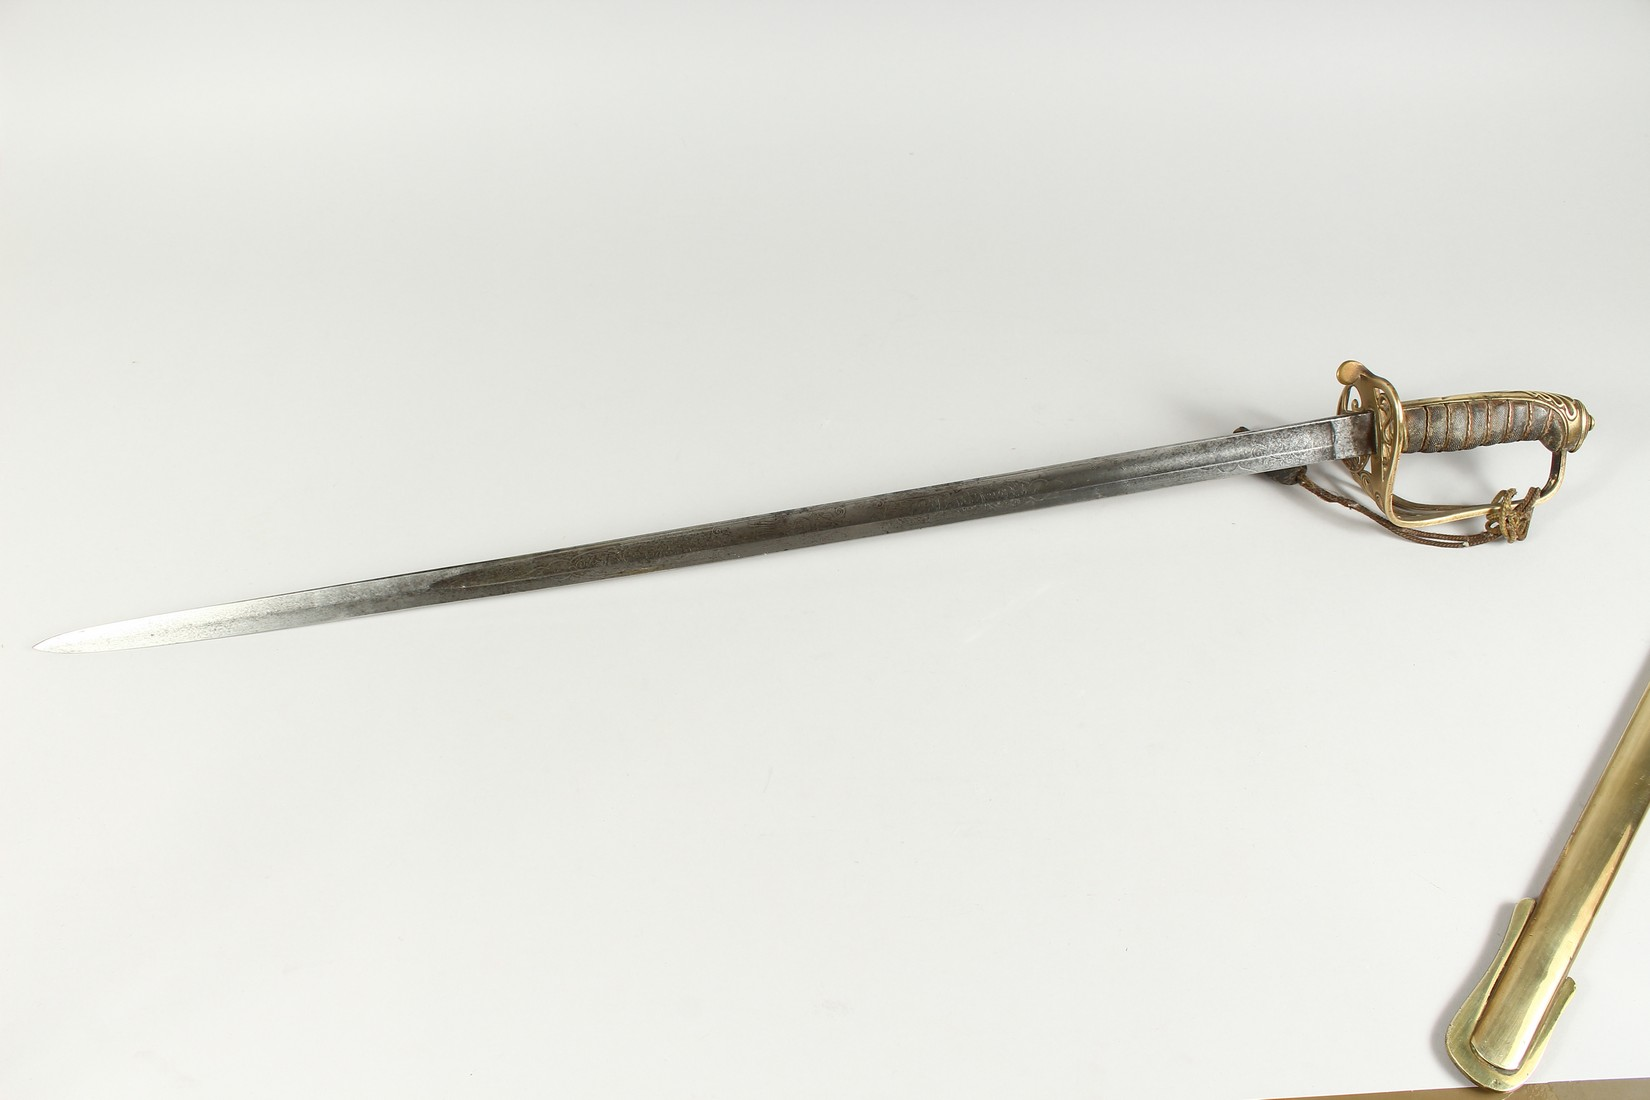 A GOOD VICTORIAN NAVAL SWORD with shagreen handle and engraved blade, V R & Crown inc., brown - Image 18 of 25